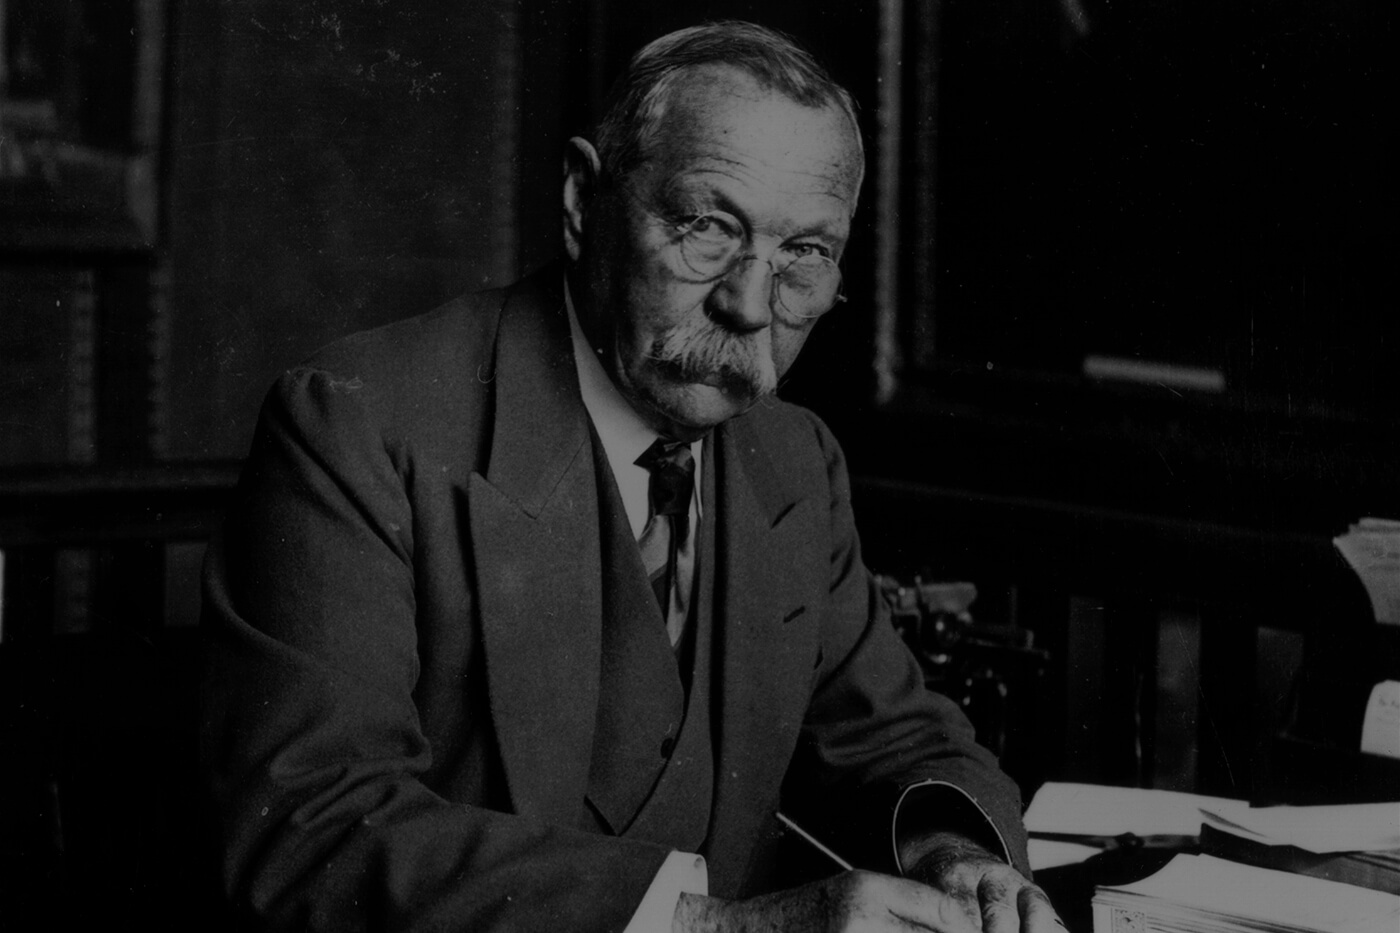 Older gentleman with glasses and moustache sitting at desk covered in papers, pen in hand.